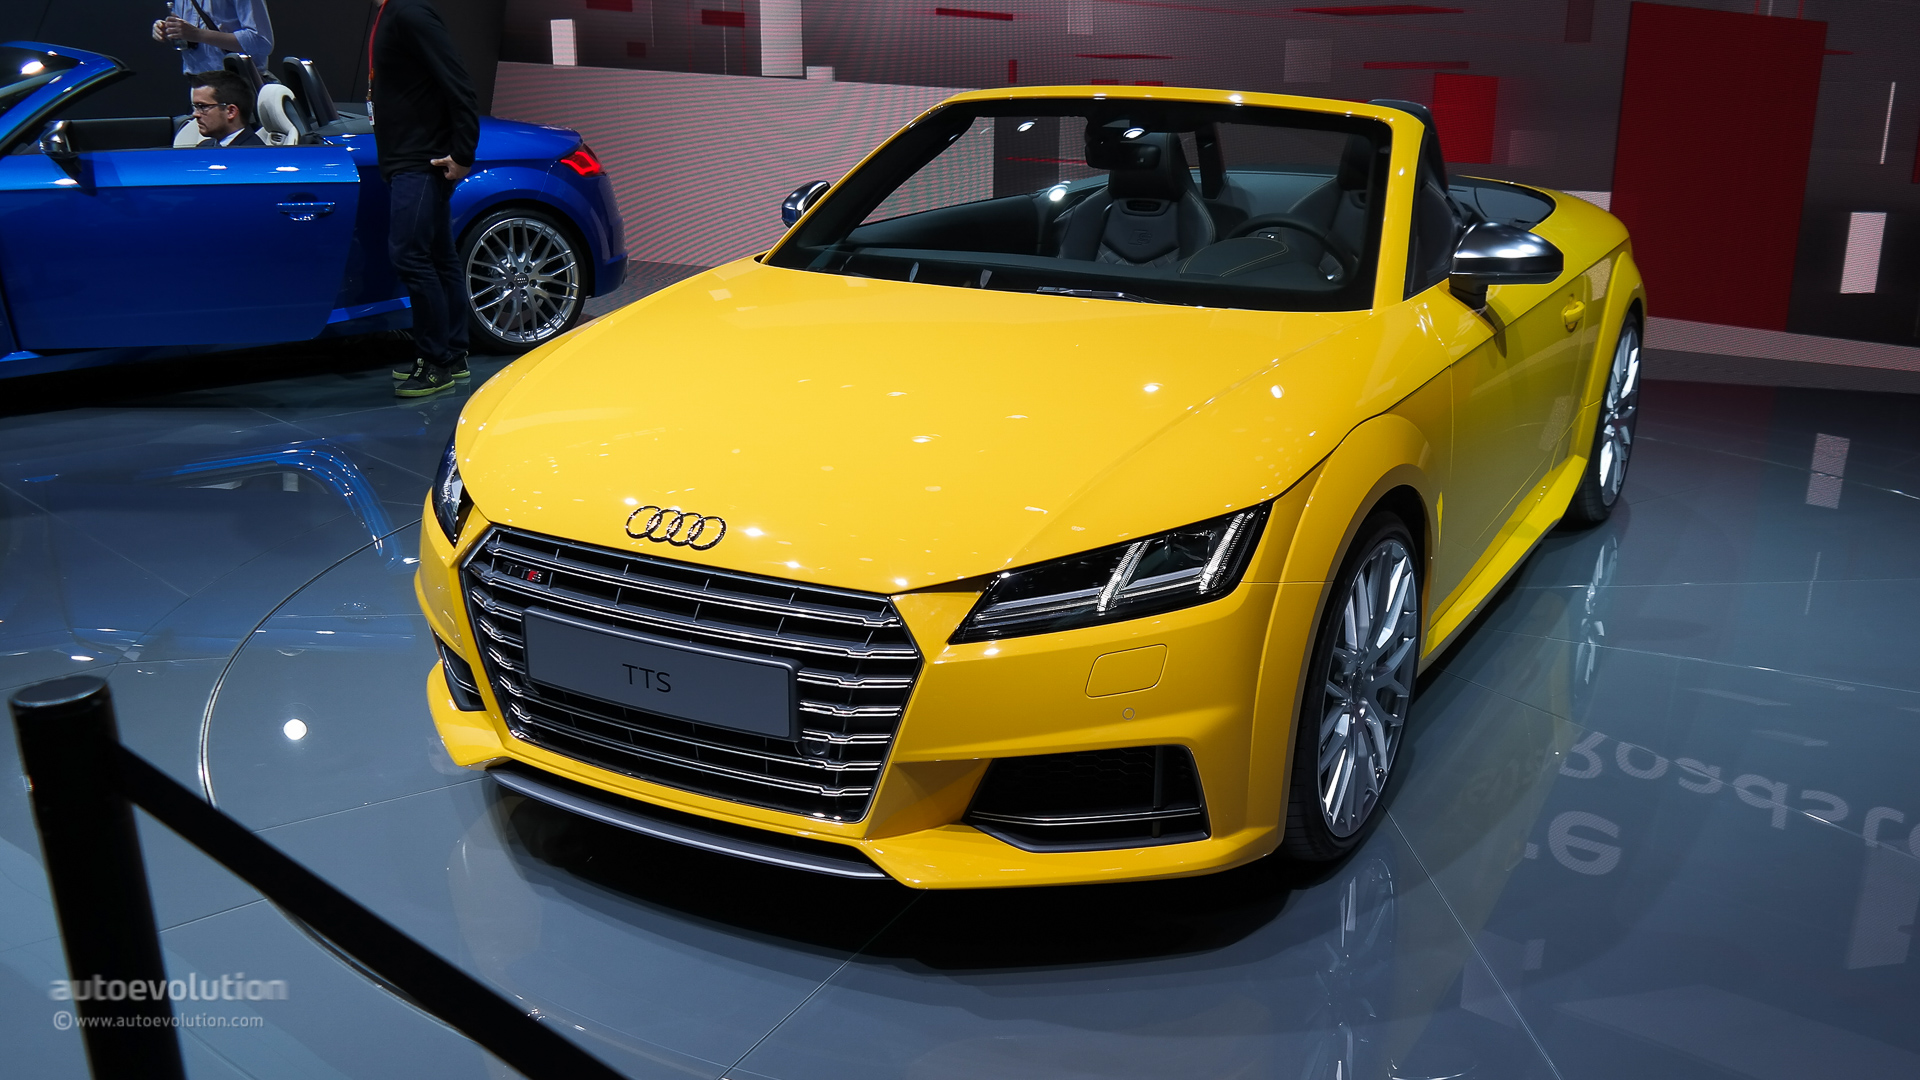 all new audi tt and tts to make us debut at los angeles auto show as 2016 models autoevolution. Black Bedroom Furniture Sets. Home Design Ideas